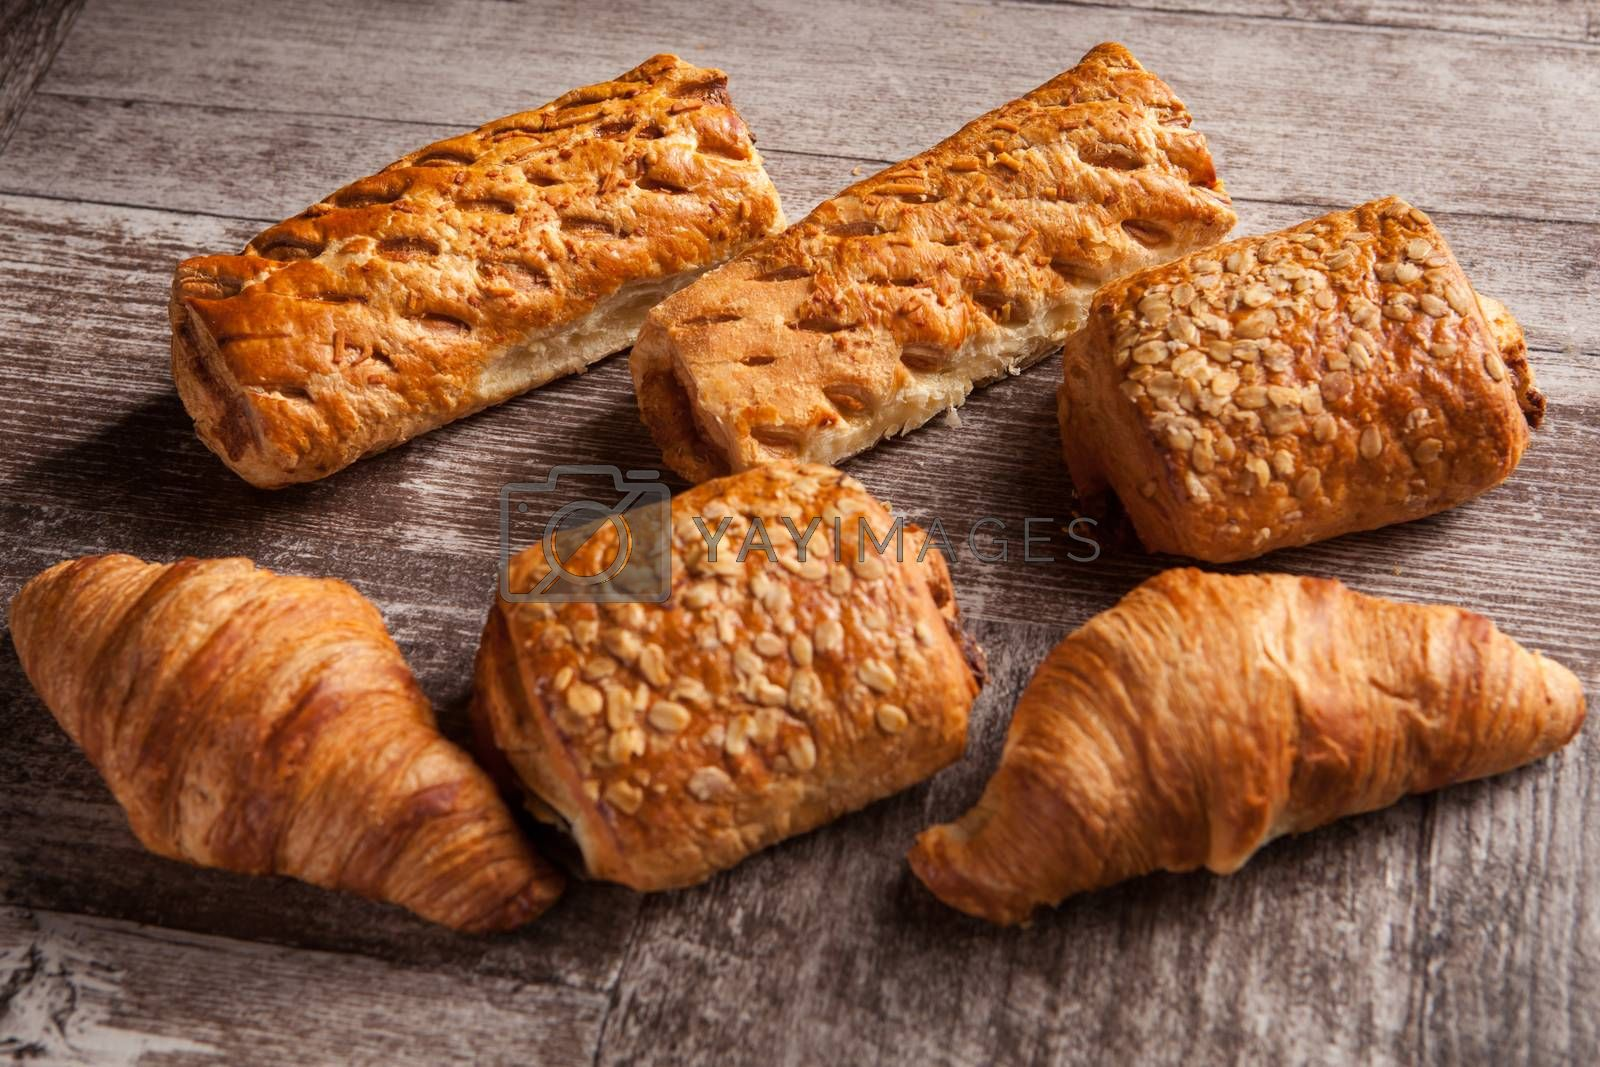 Assortment of pastries on rustic wooden table by DCStudio